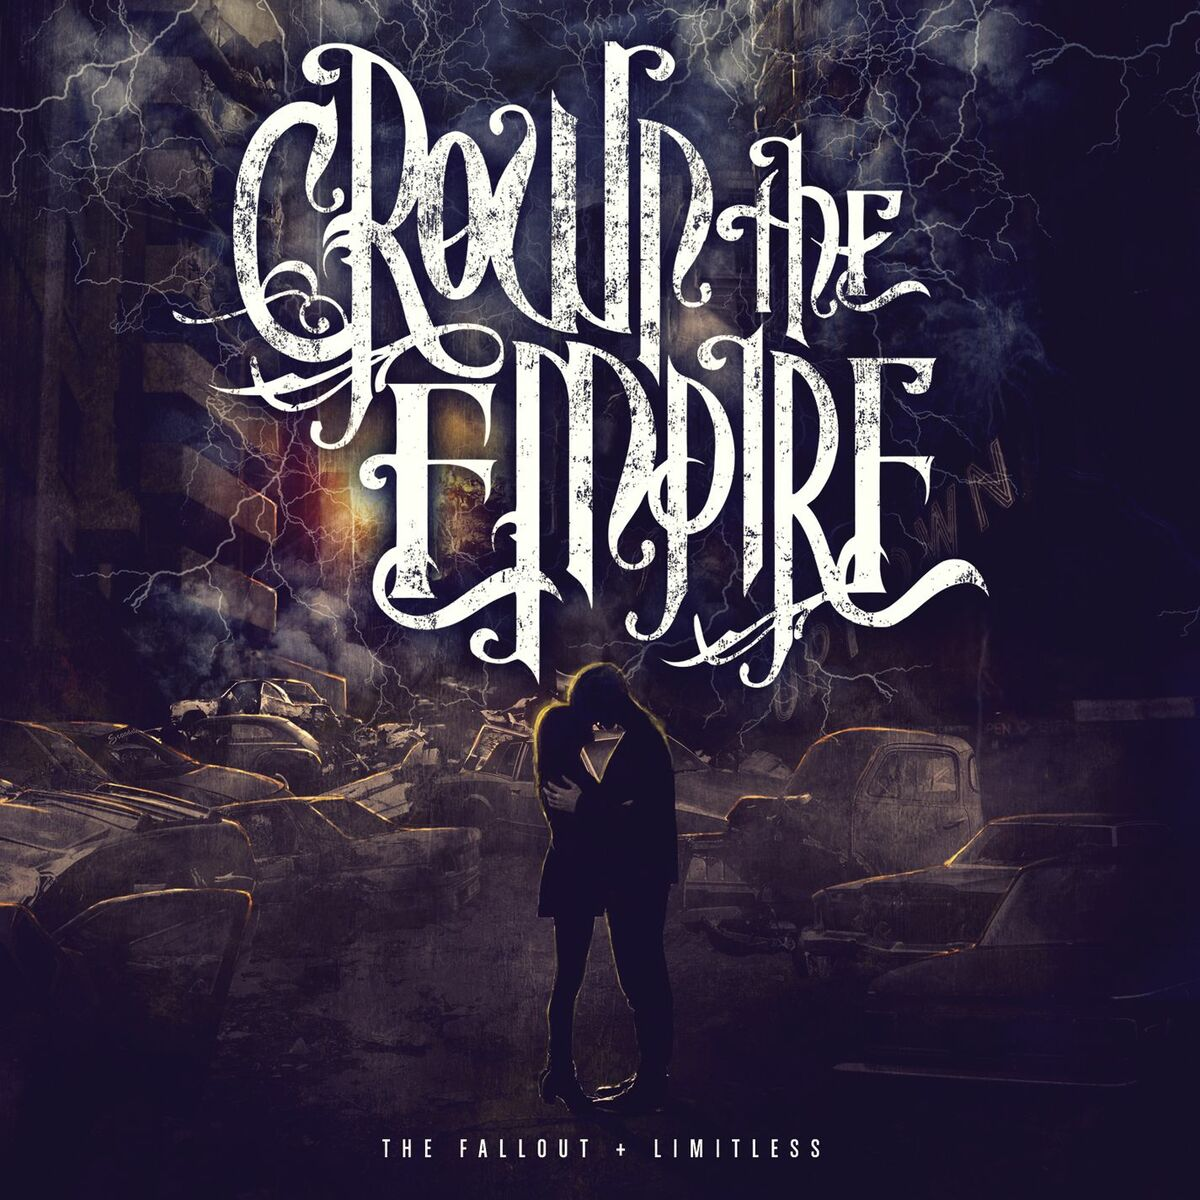 Crown the Empire - The Fallout (Deluxe reissue) (2013)